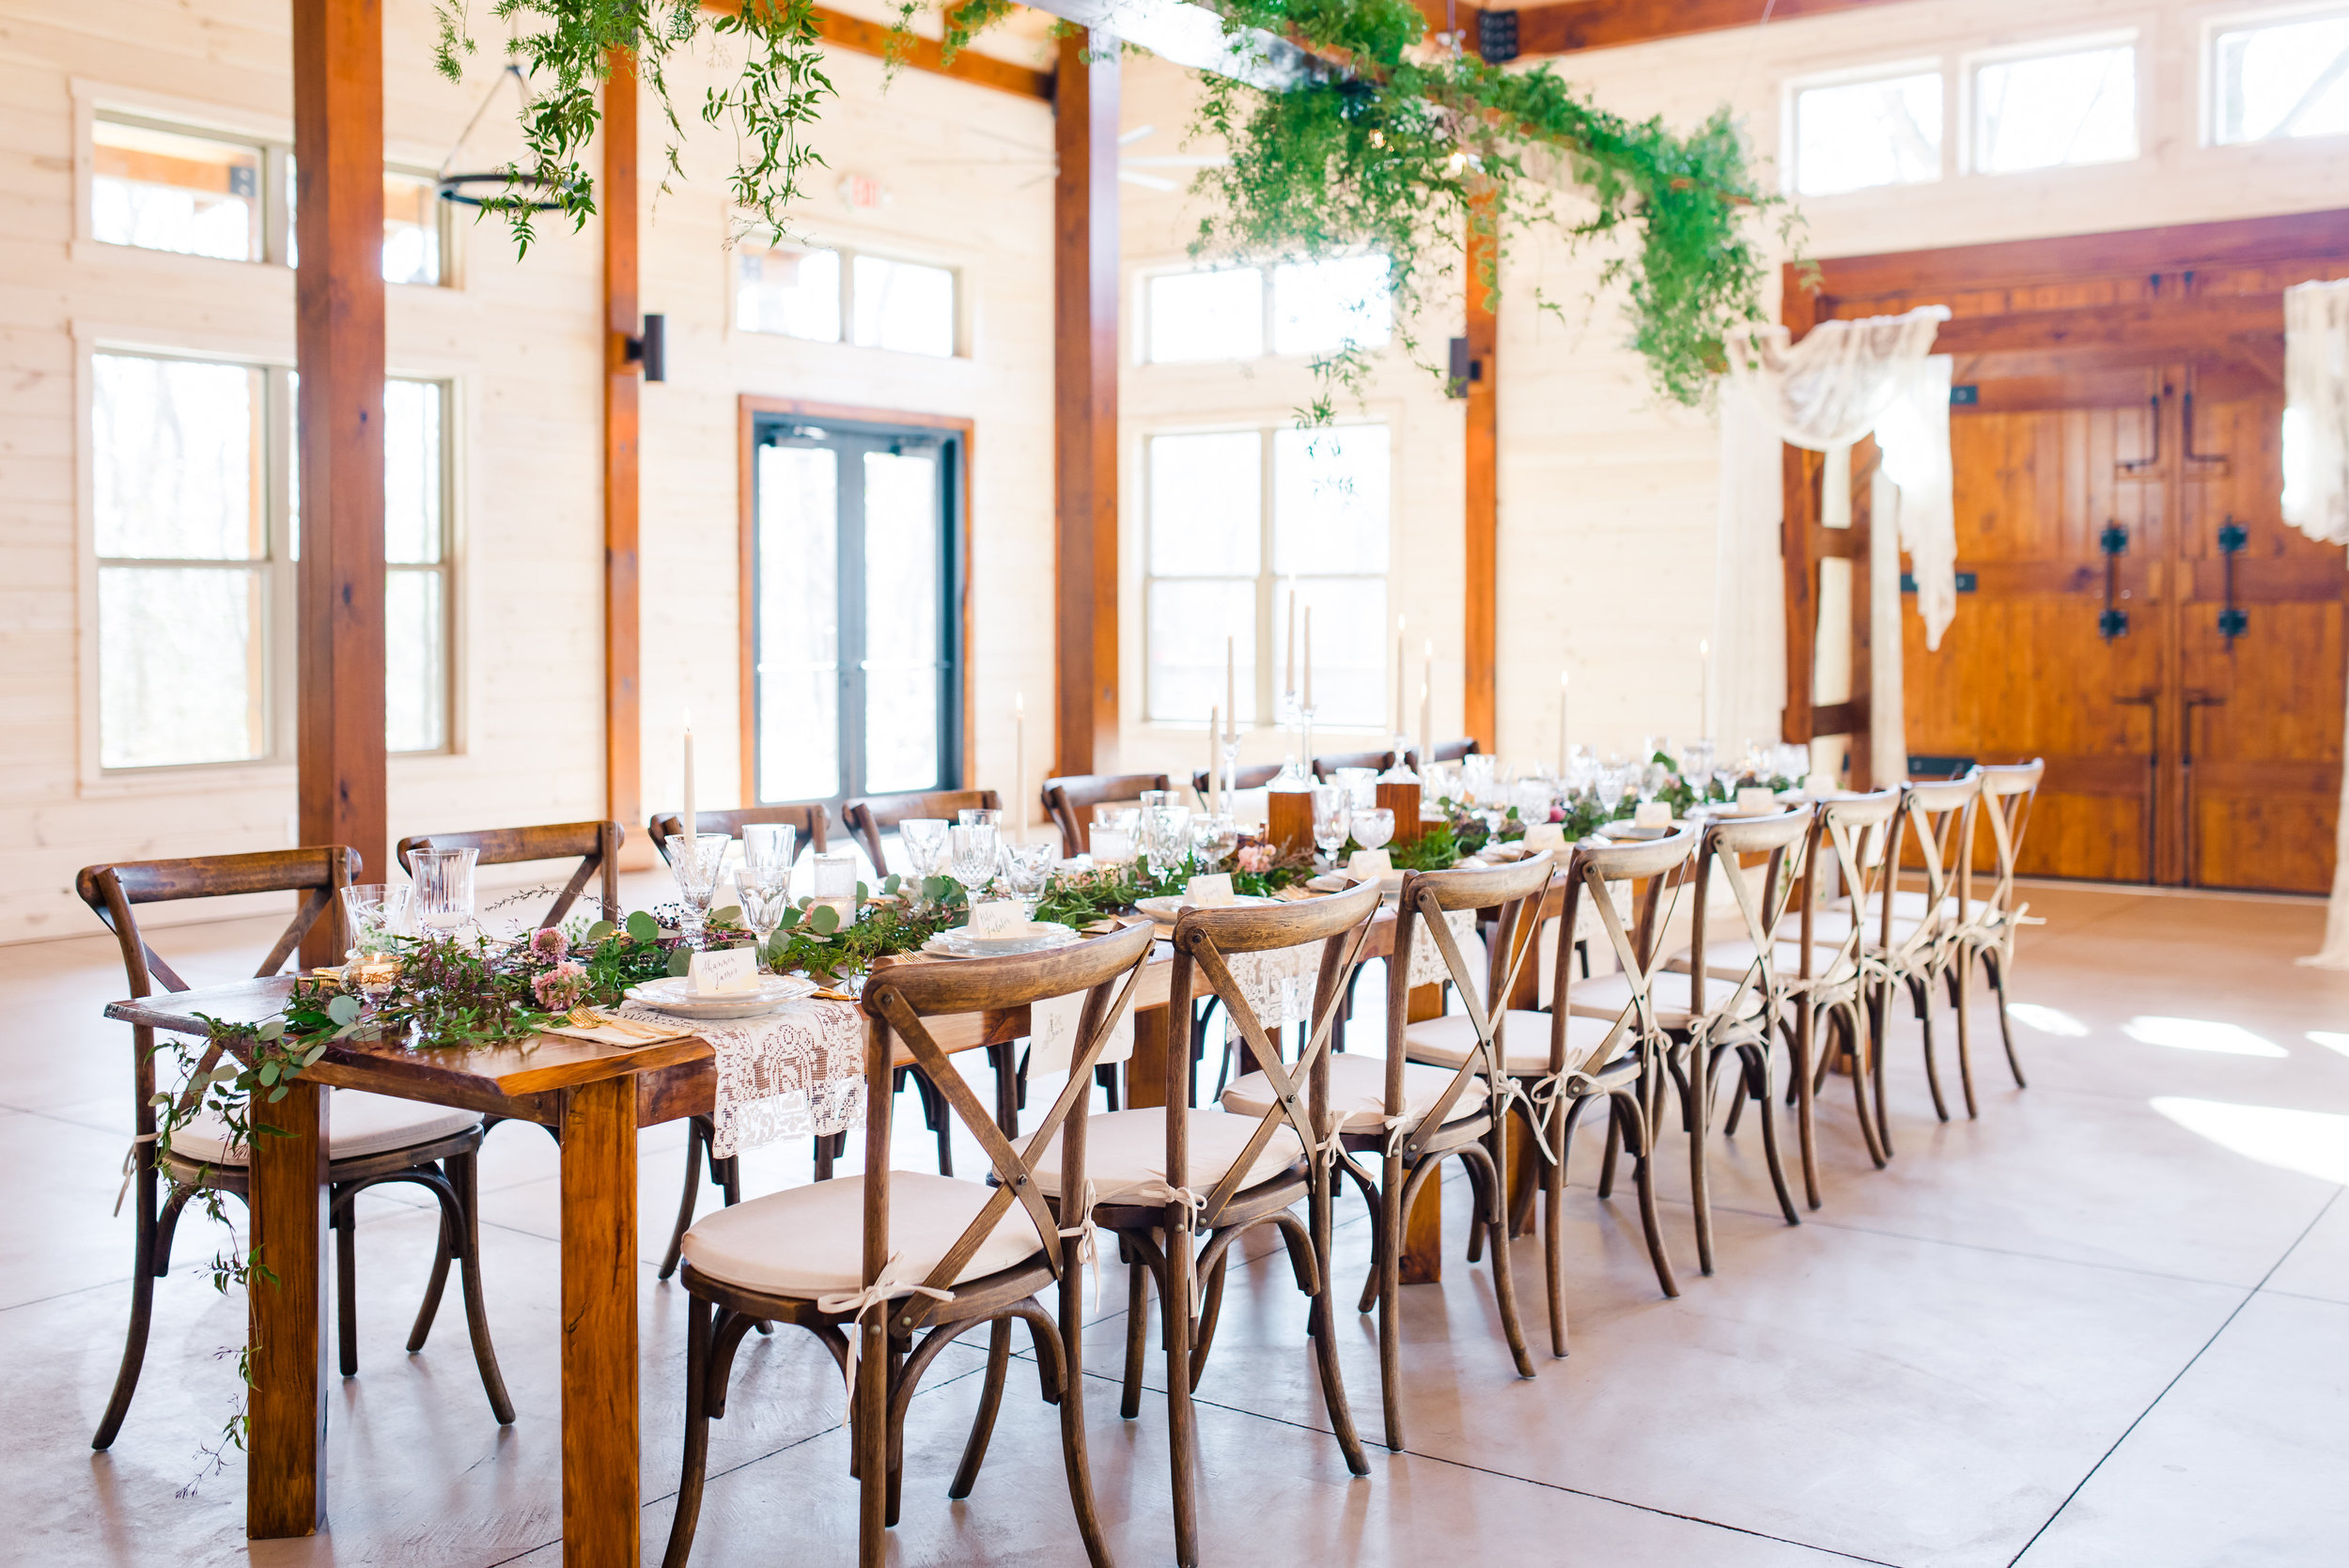 PLAYFUL & RUSTIC HEAD TABLE AT HIWASSEE RIVER WEDDINGS